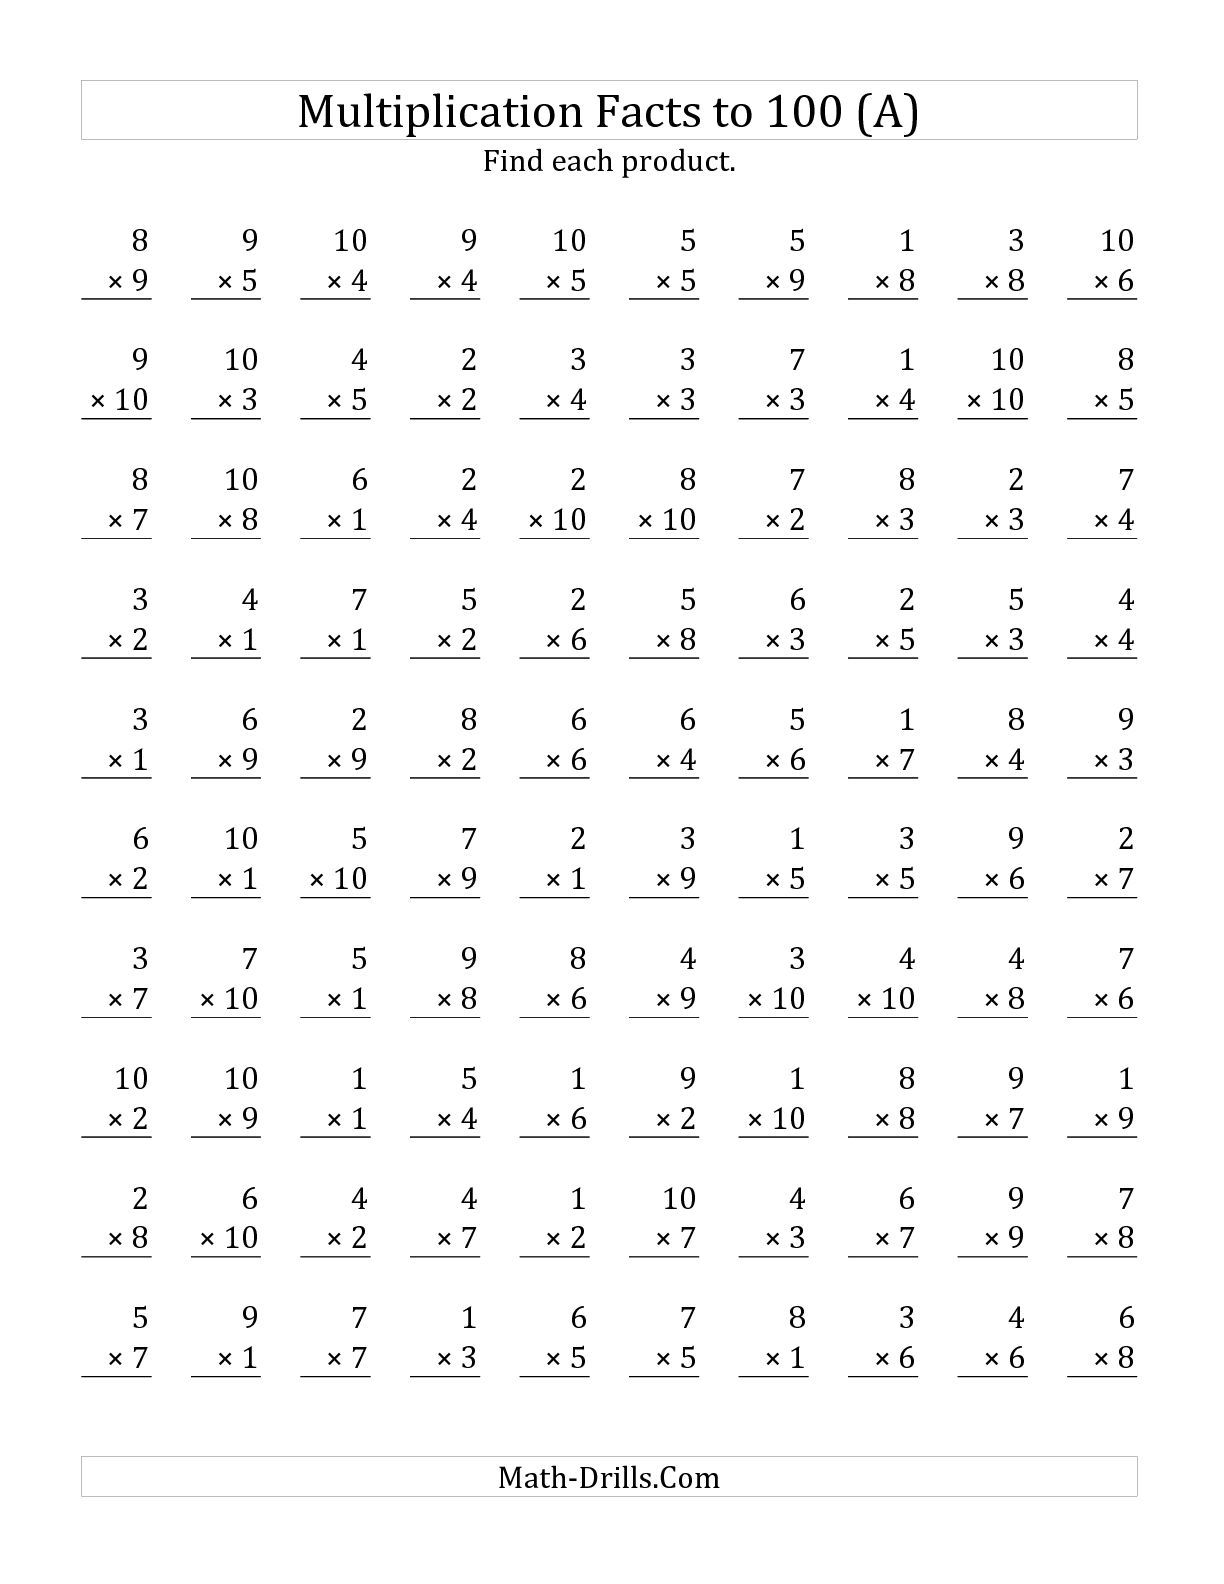 The Multiplication Facts to 100 No Zeros (A) math worksheet from the ...